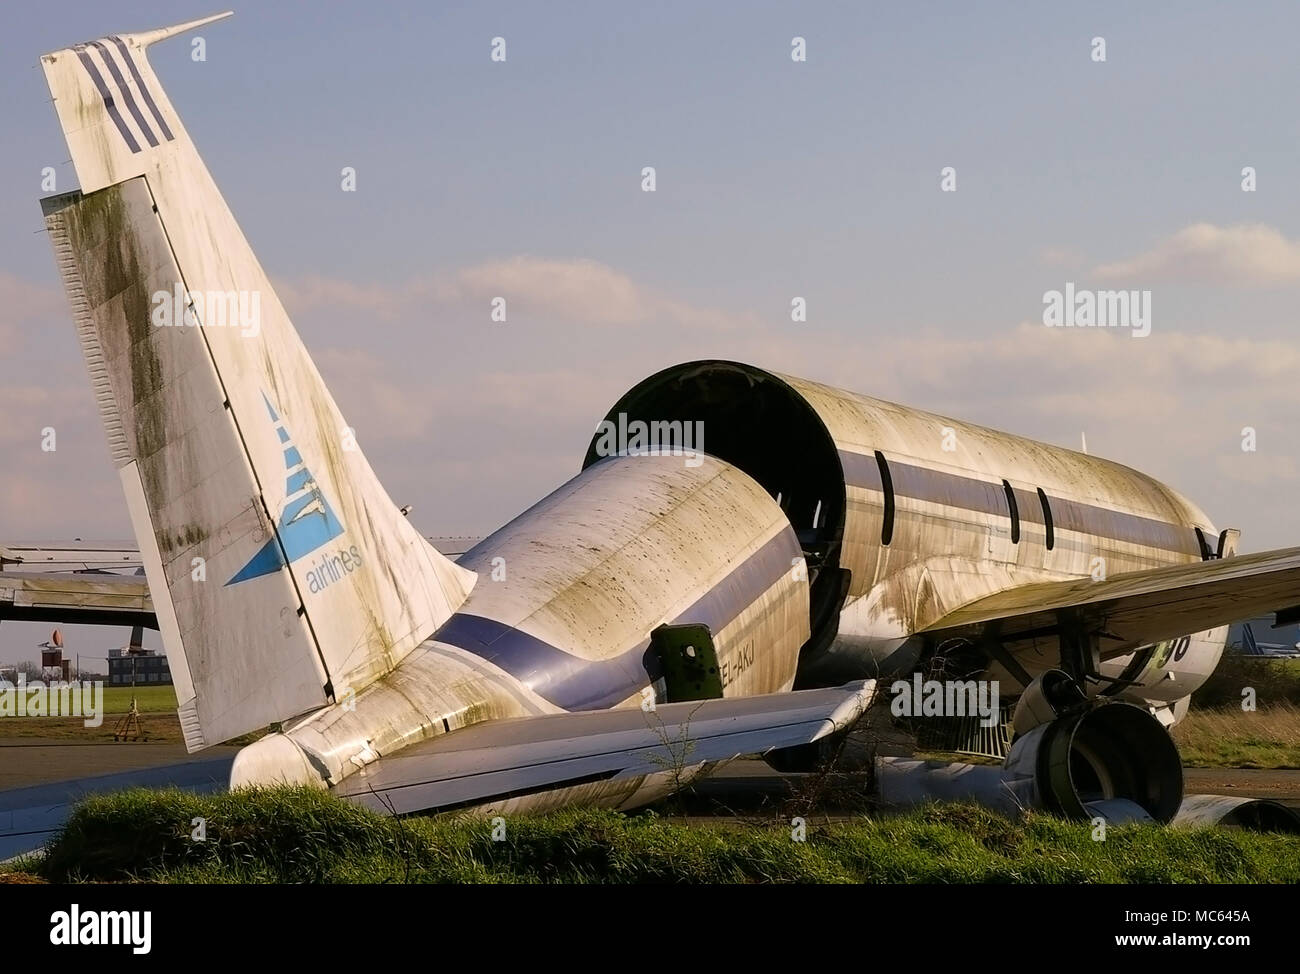 scrapping-a-boeing-707-classic-airliner-at-the-end-of-its-life-being-scrapped-disposed-of-dismantling-retired-jet-plane-tail-cut-off-boneyard-MC645A.jpg